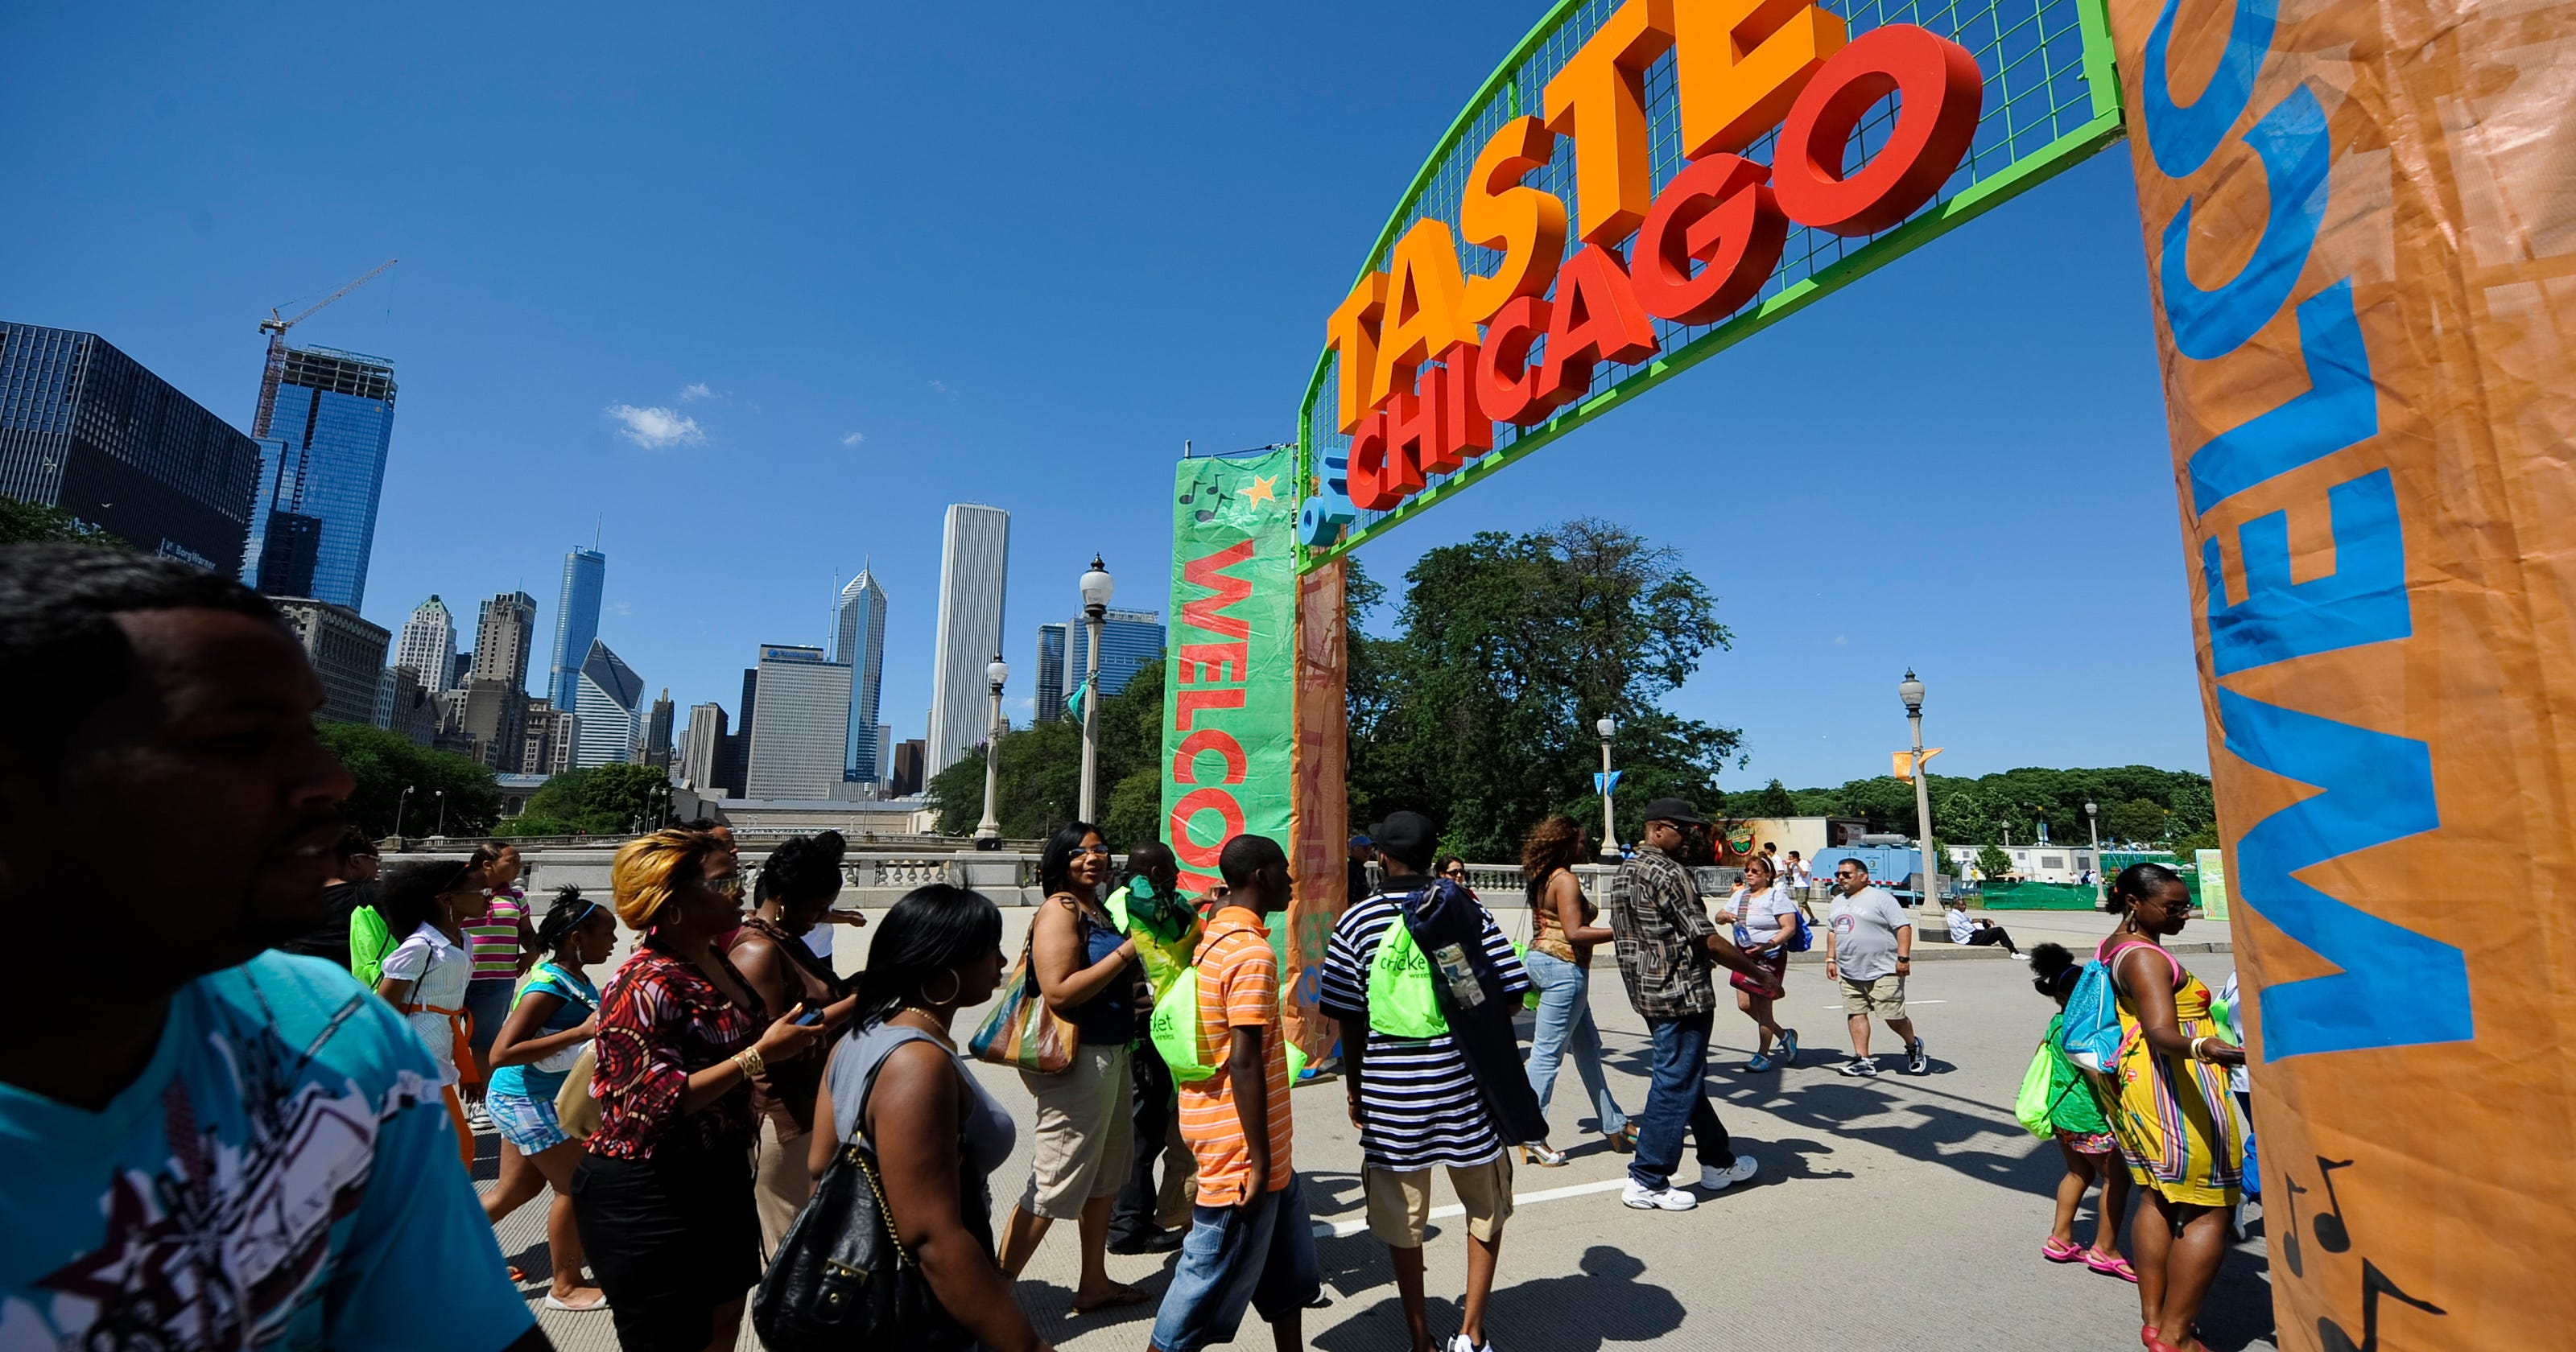 Chicago: Conde Nast Traveler readers name it best big city in the USA